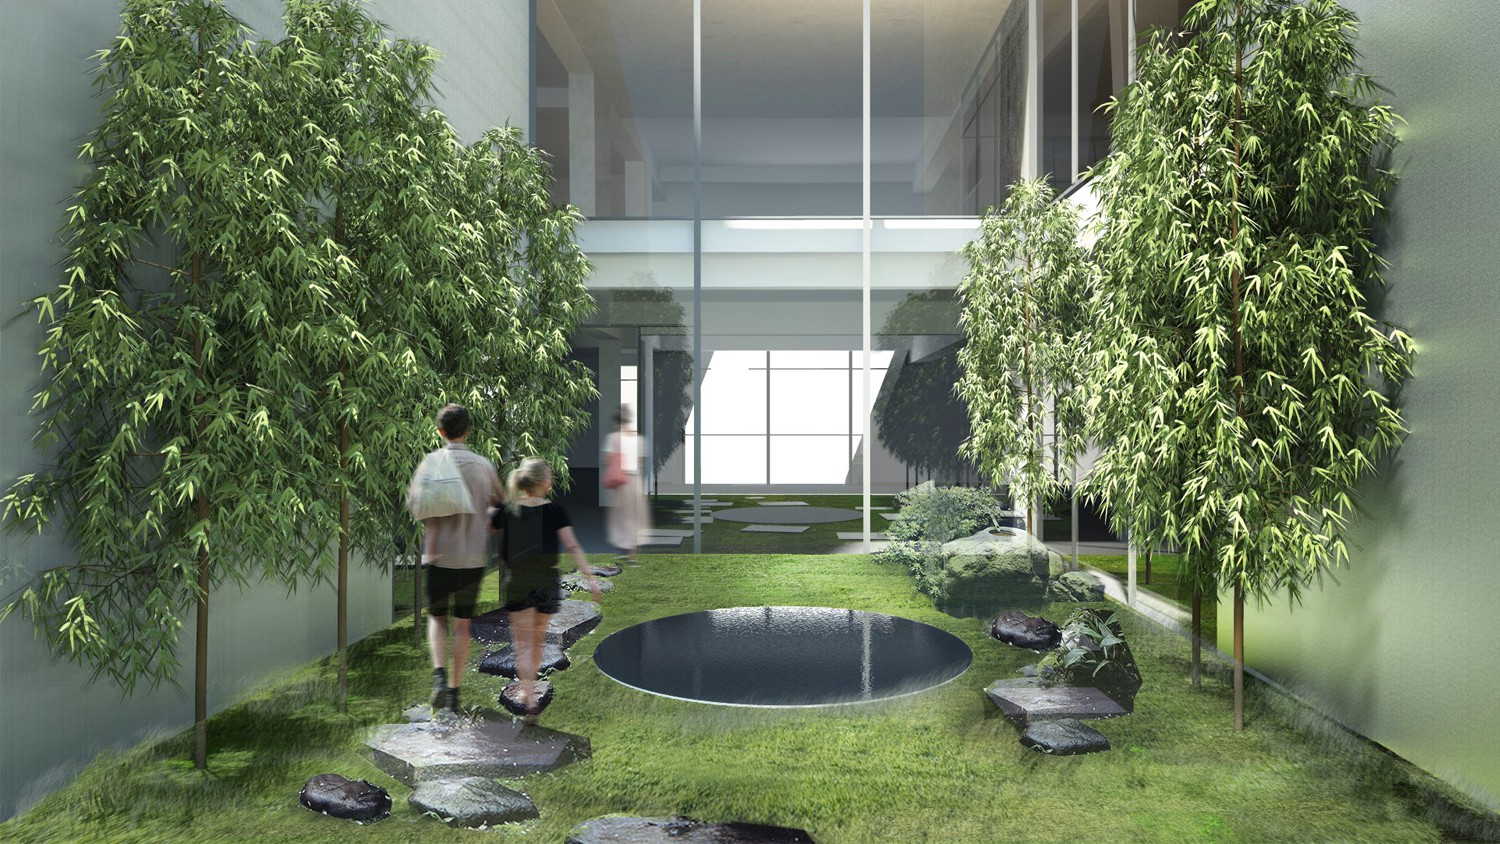 https://stevenholl.sfo2.digitaloceanspaces.com/uploads/projects/project-images/cifi-garden-1.jpg